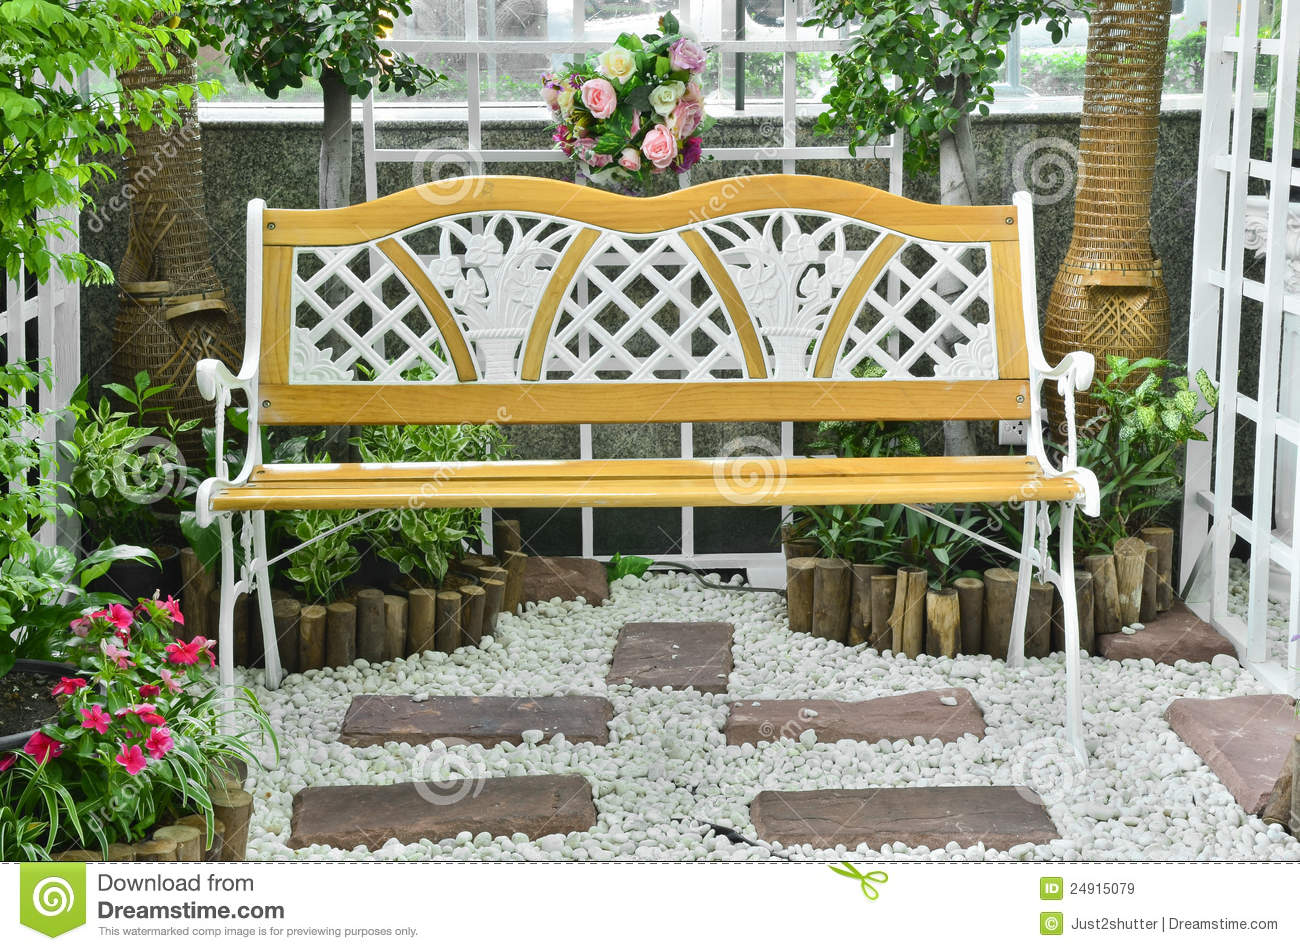 chair in beautiful garden stock image. image of furniture - 24915079